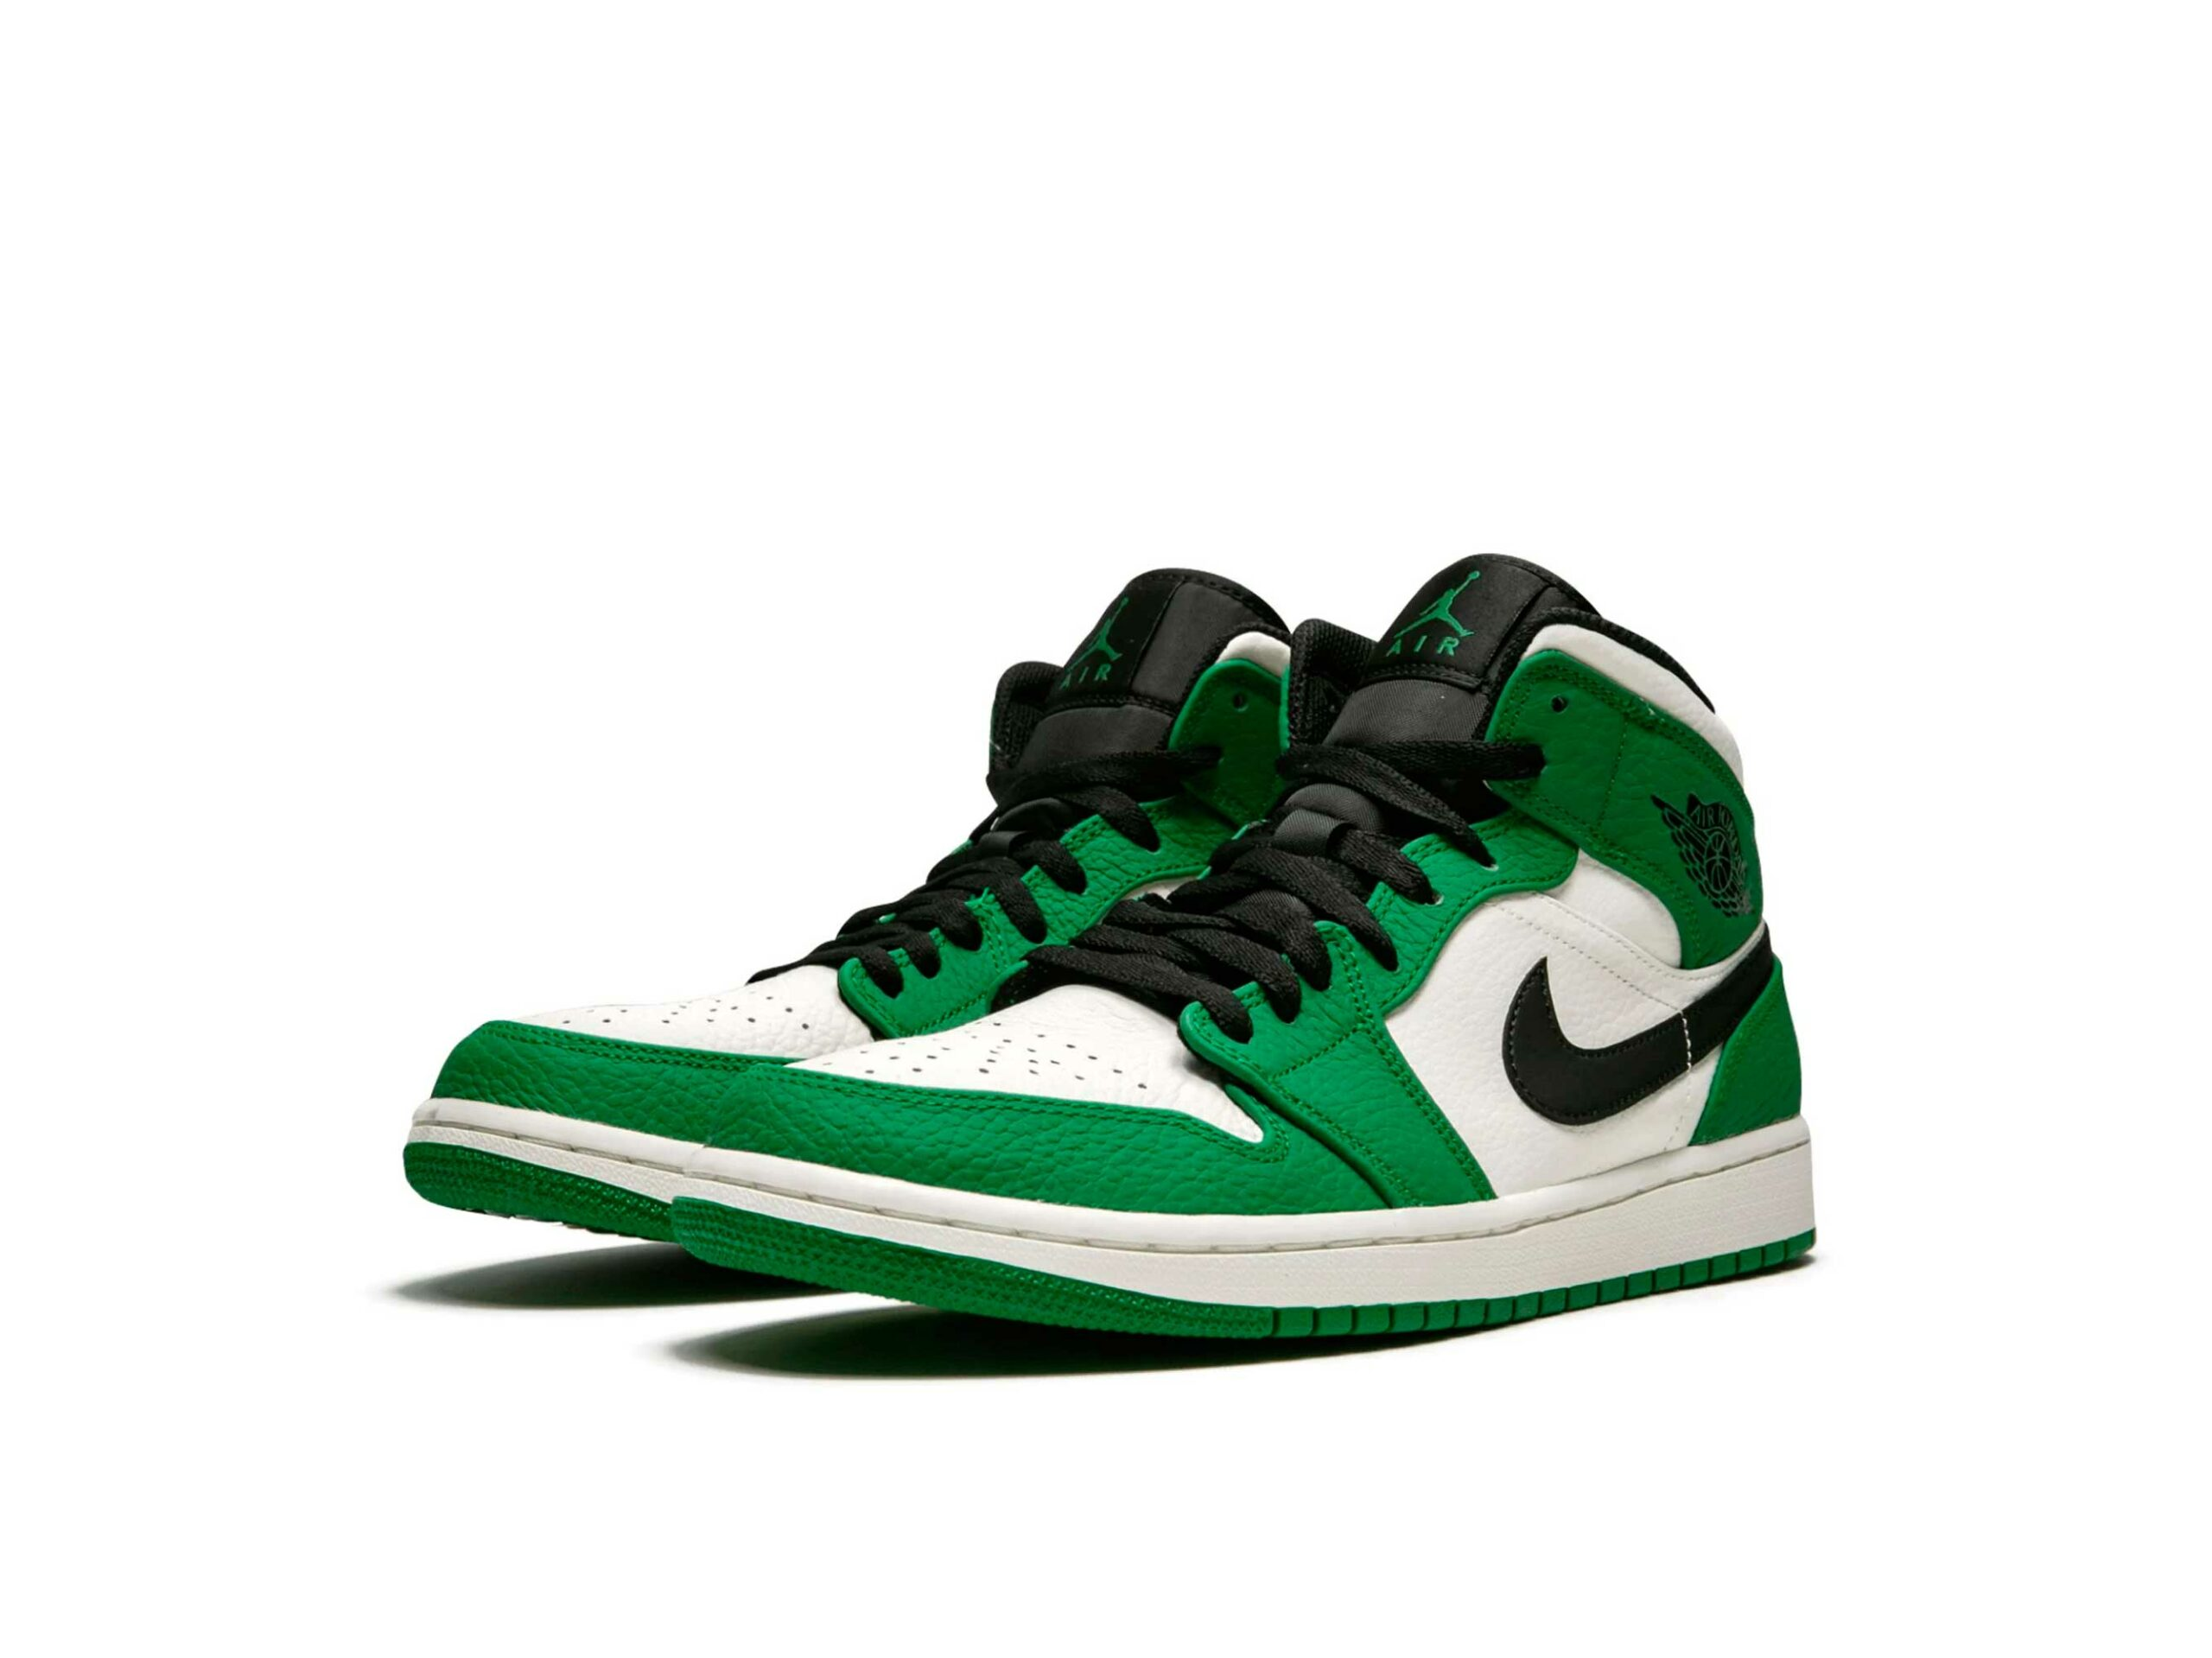 nike air jordan 1 mid pine green 852542_301 купить